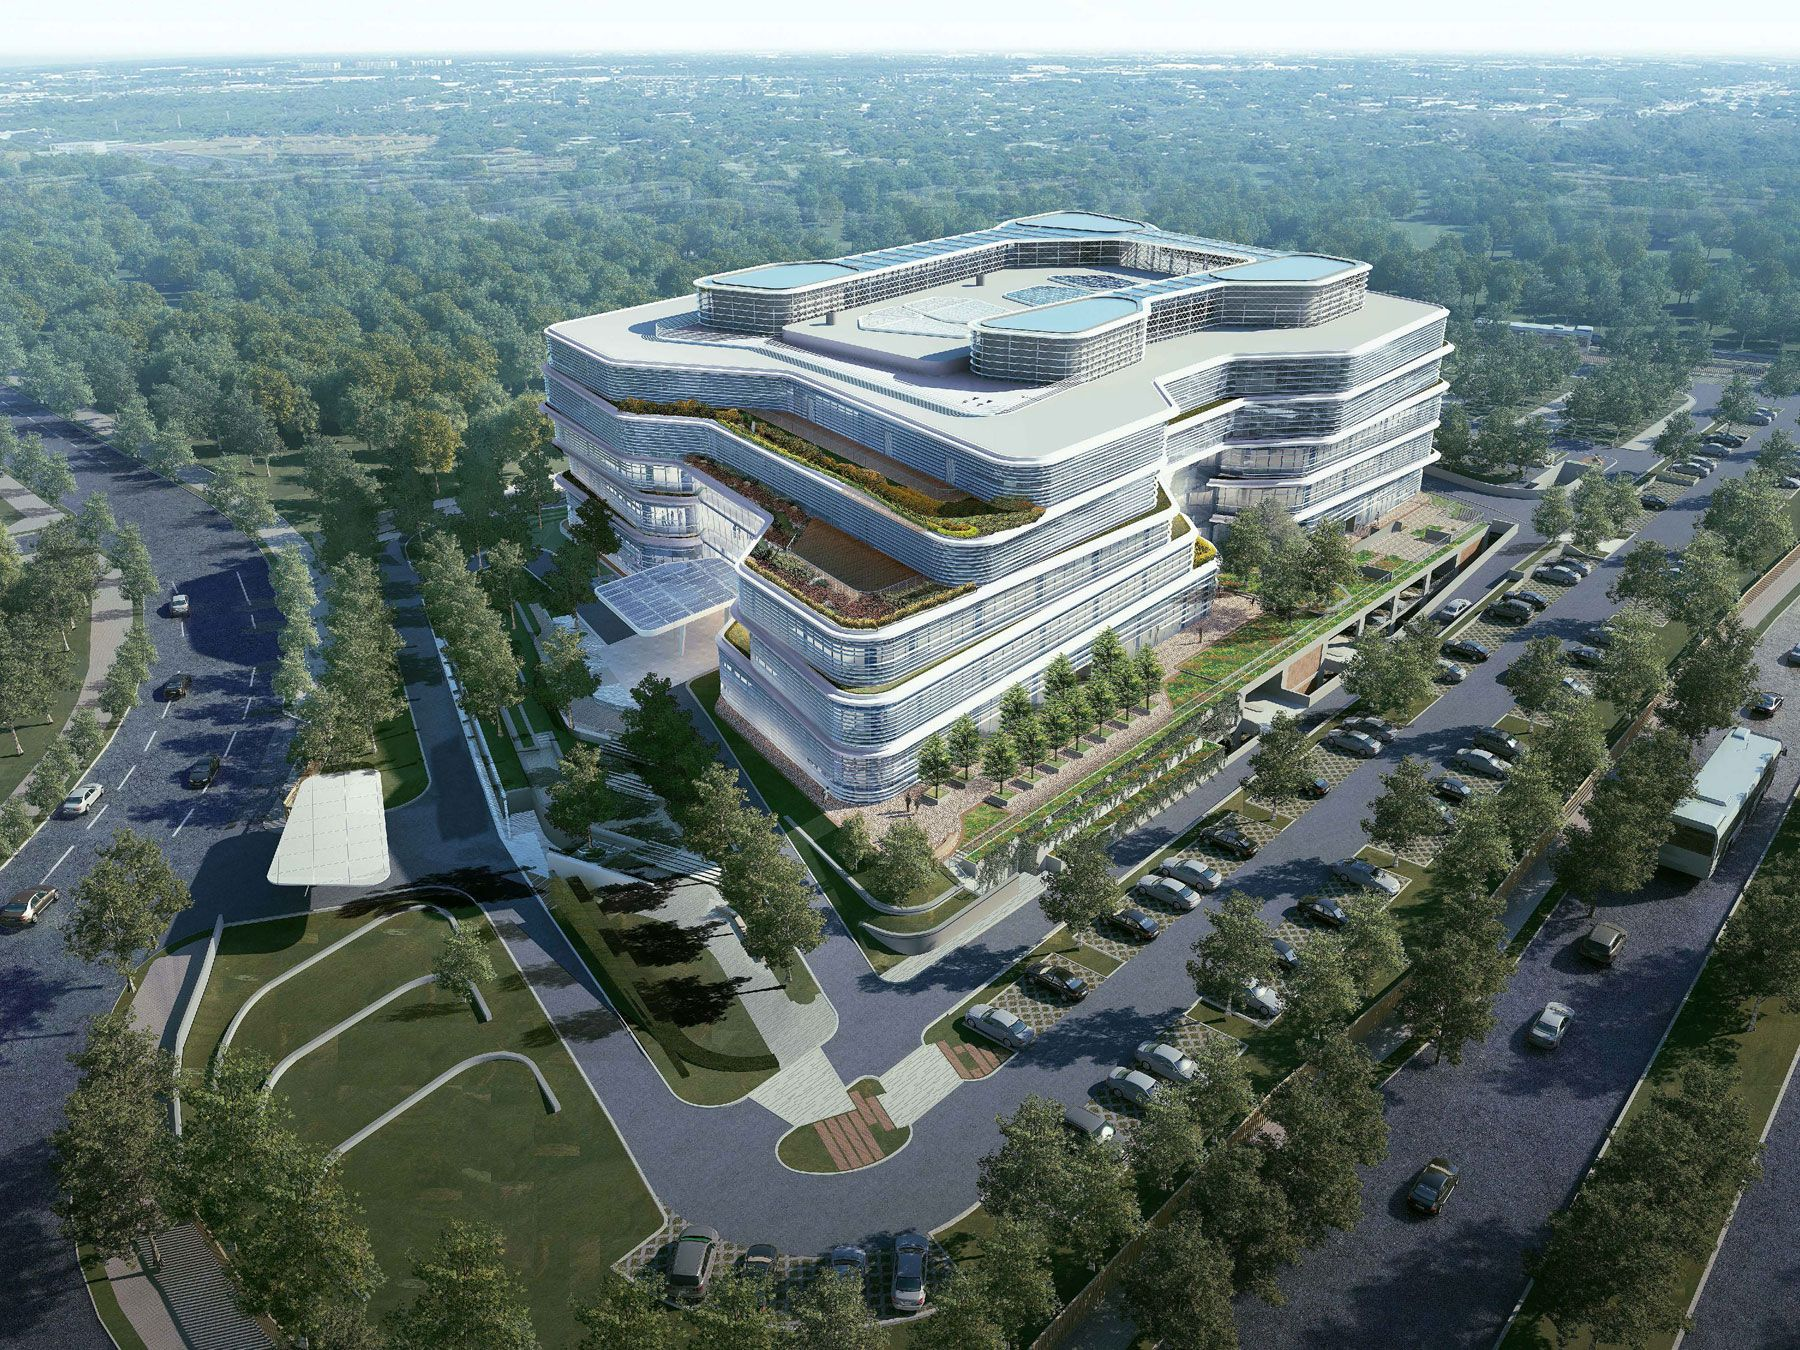 Unilever's Indonesian head office BSD City, Tangerang